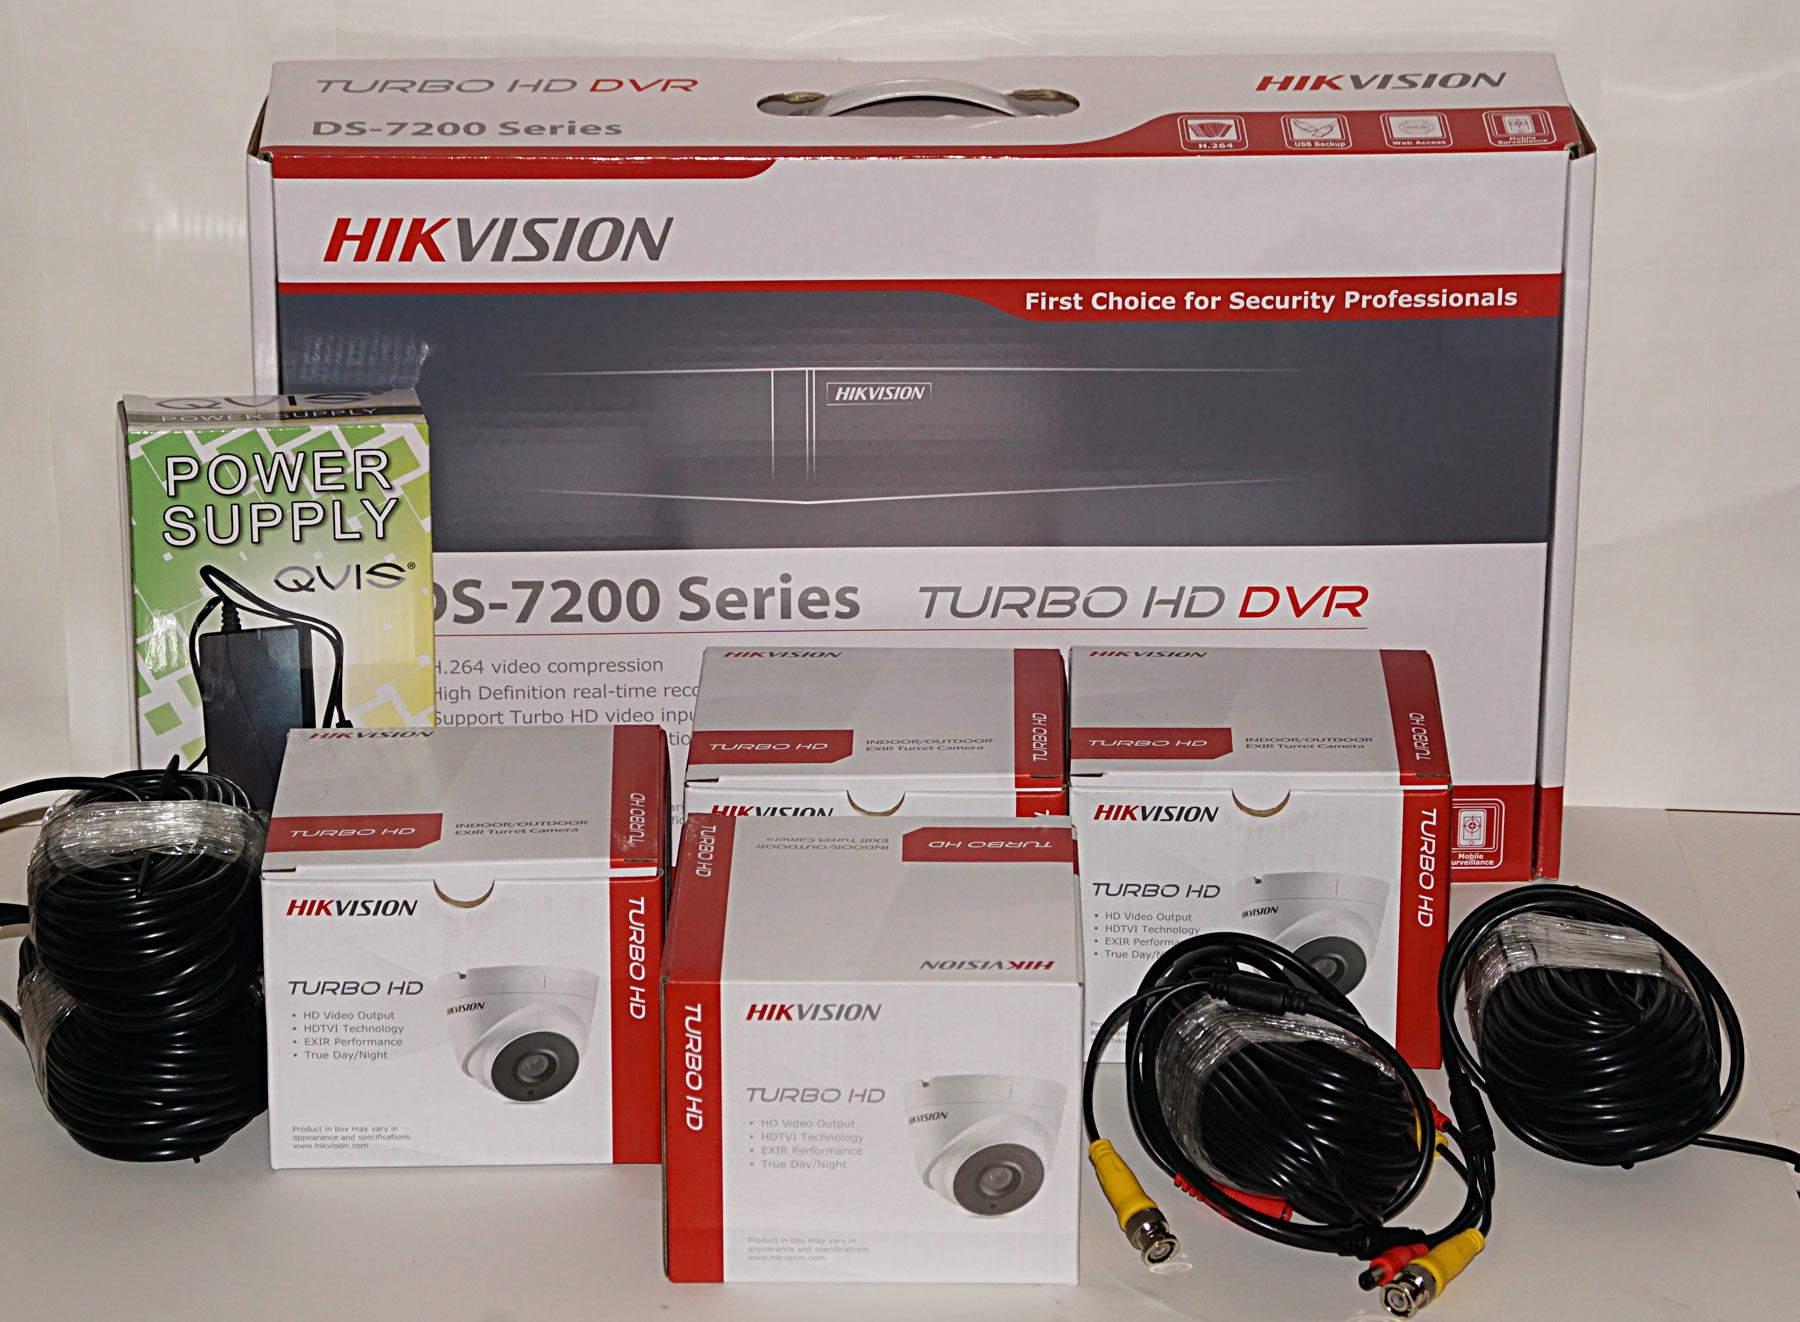 4 Camera Full HD CCTV Kit from HIKVision, the world leaders in CCTV